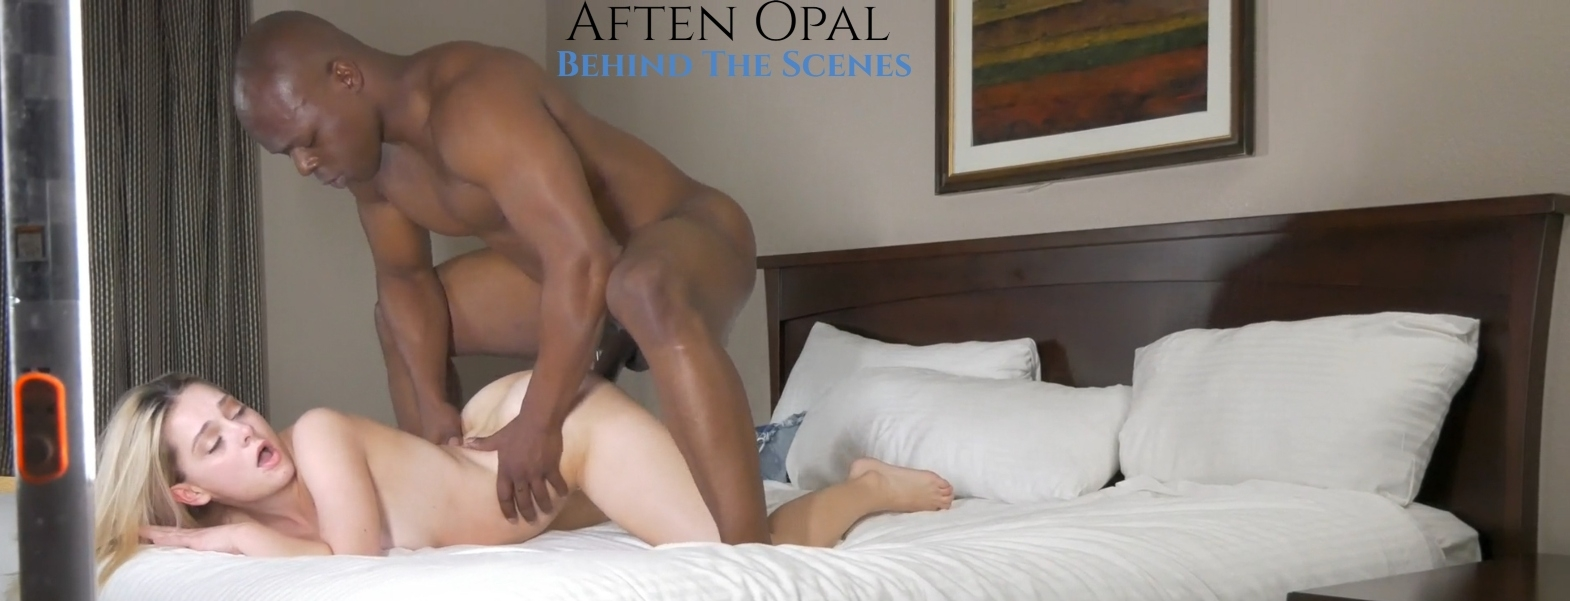 Behind_The_Scenes_With_Aften_Opal